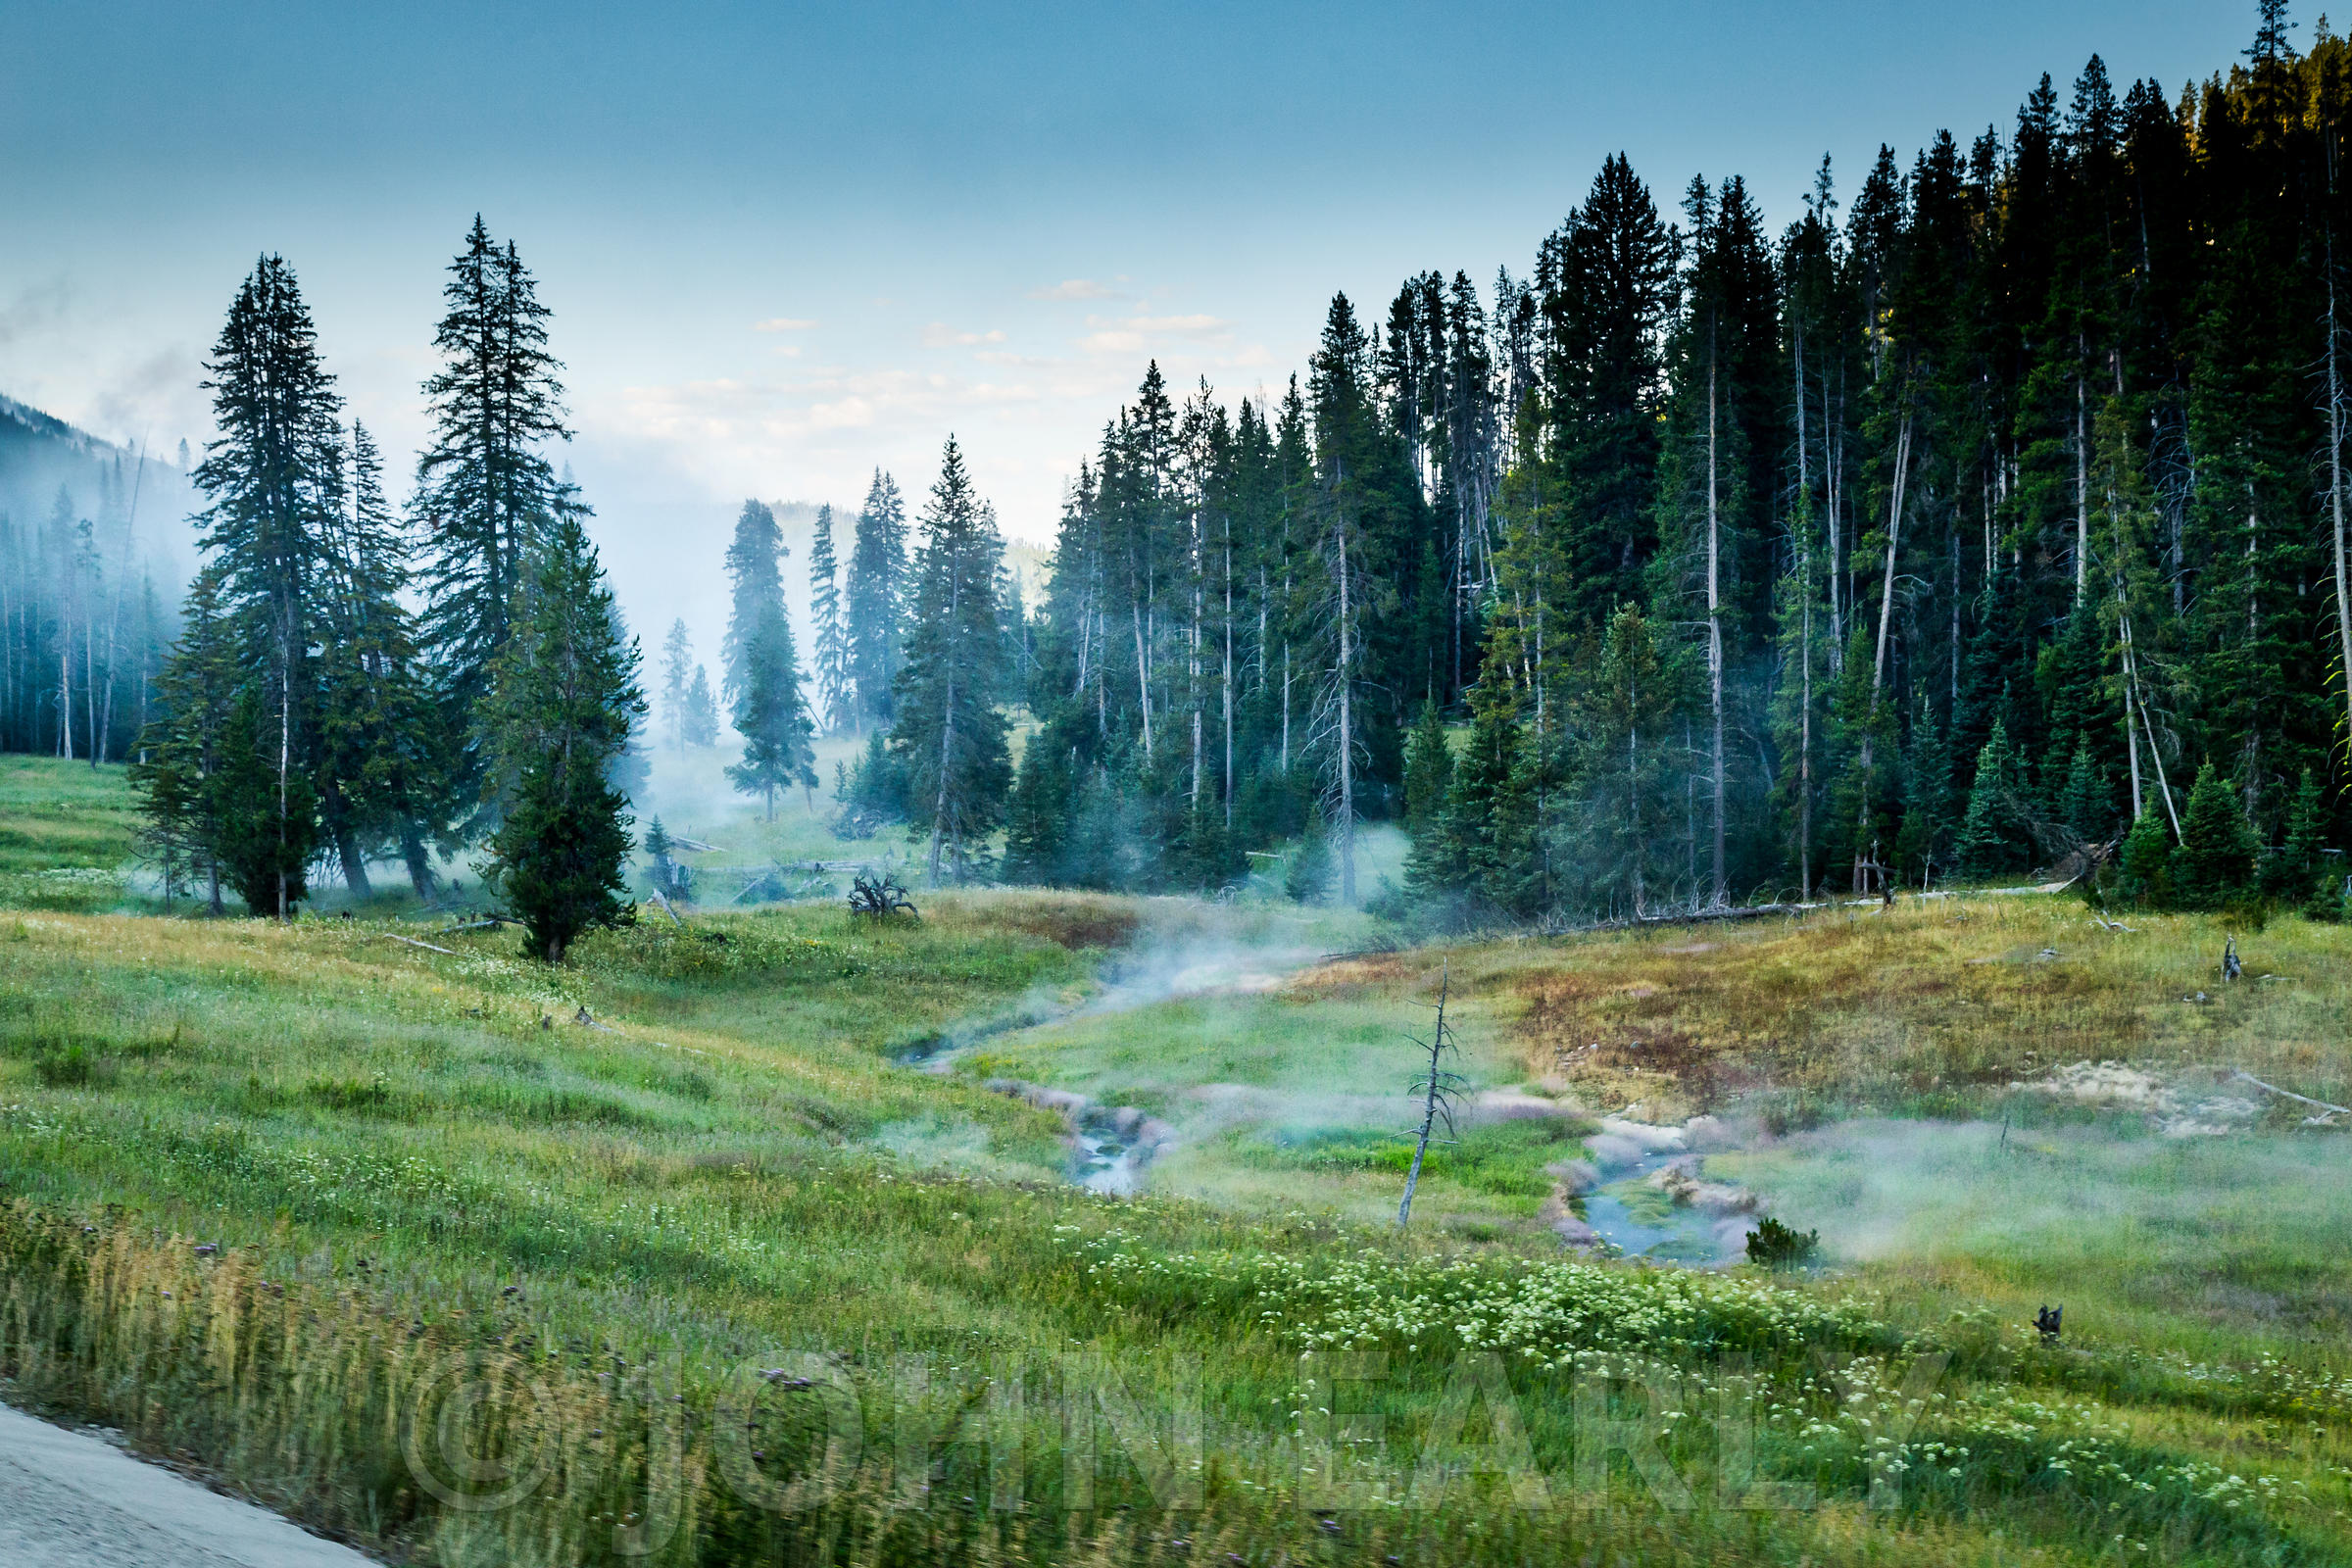 Steamy Forest Meadow In the Early Morning Light